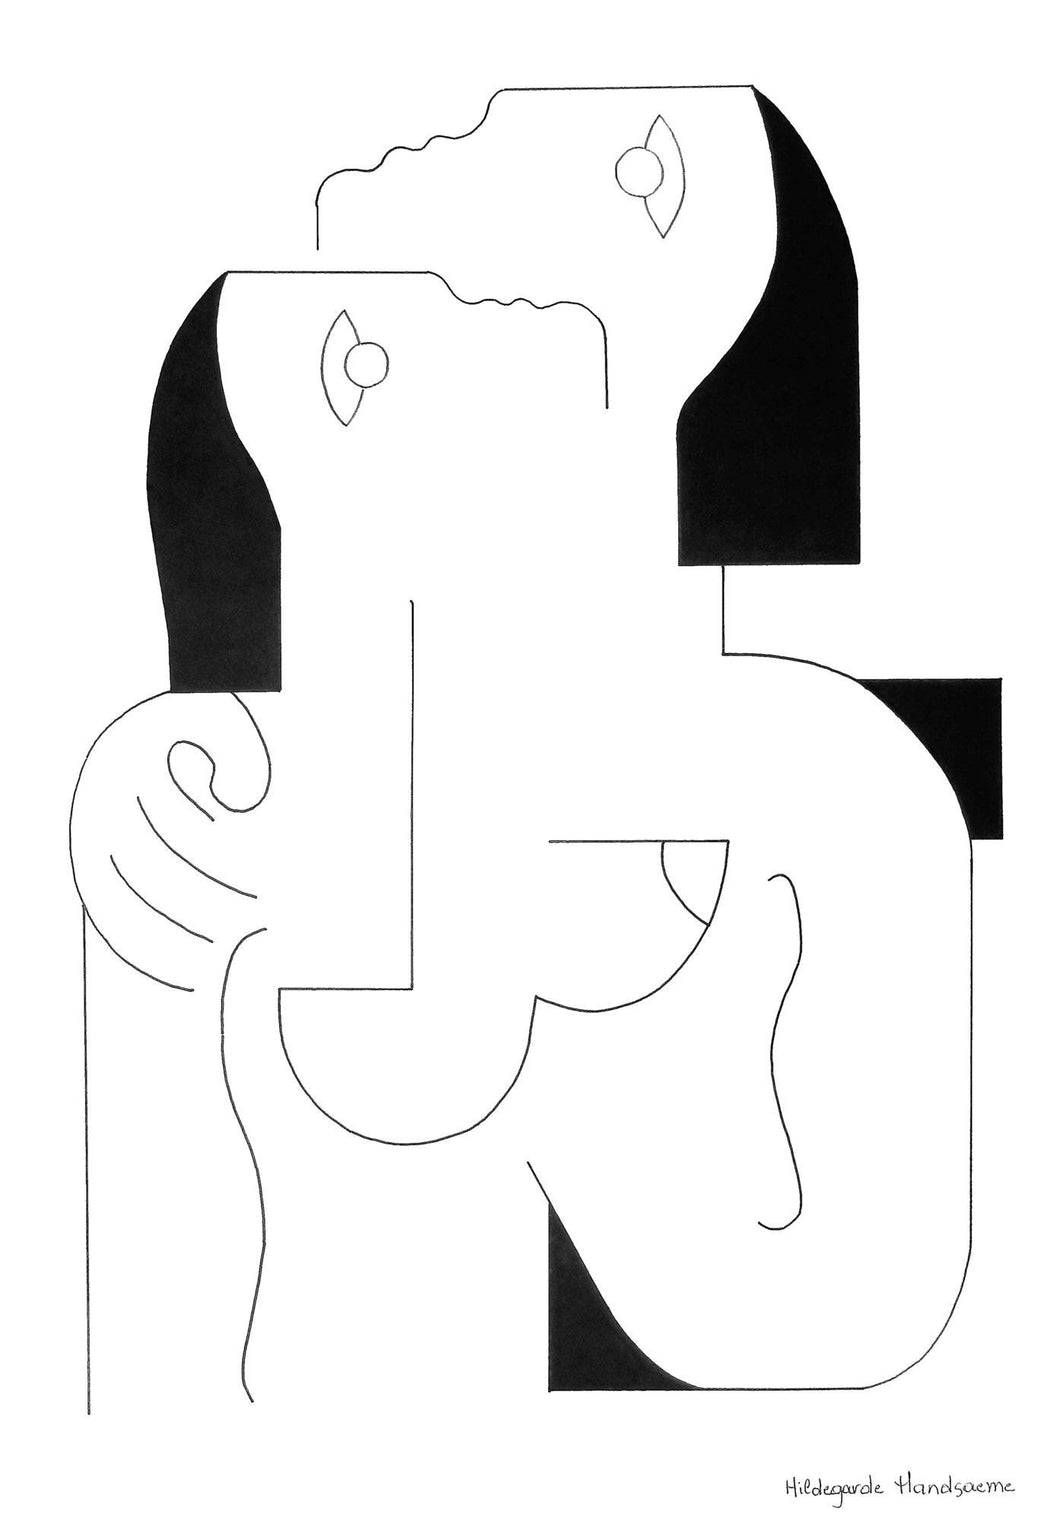 Tendress by Hildegarde Handsaeme, Drawing at Art Acacia Gallery & Advisory